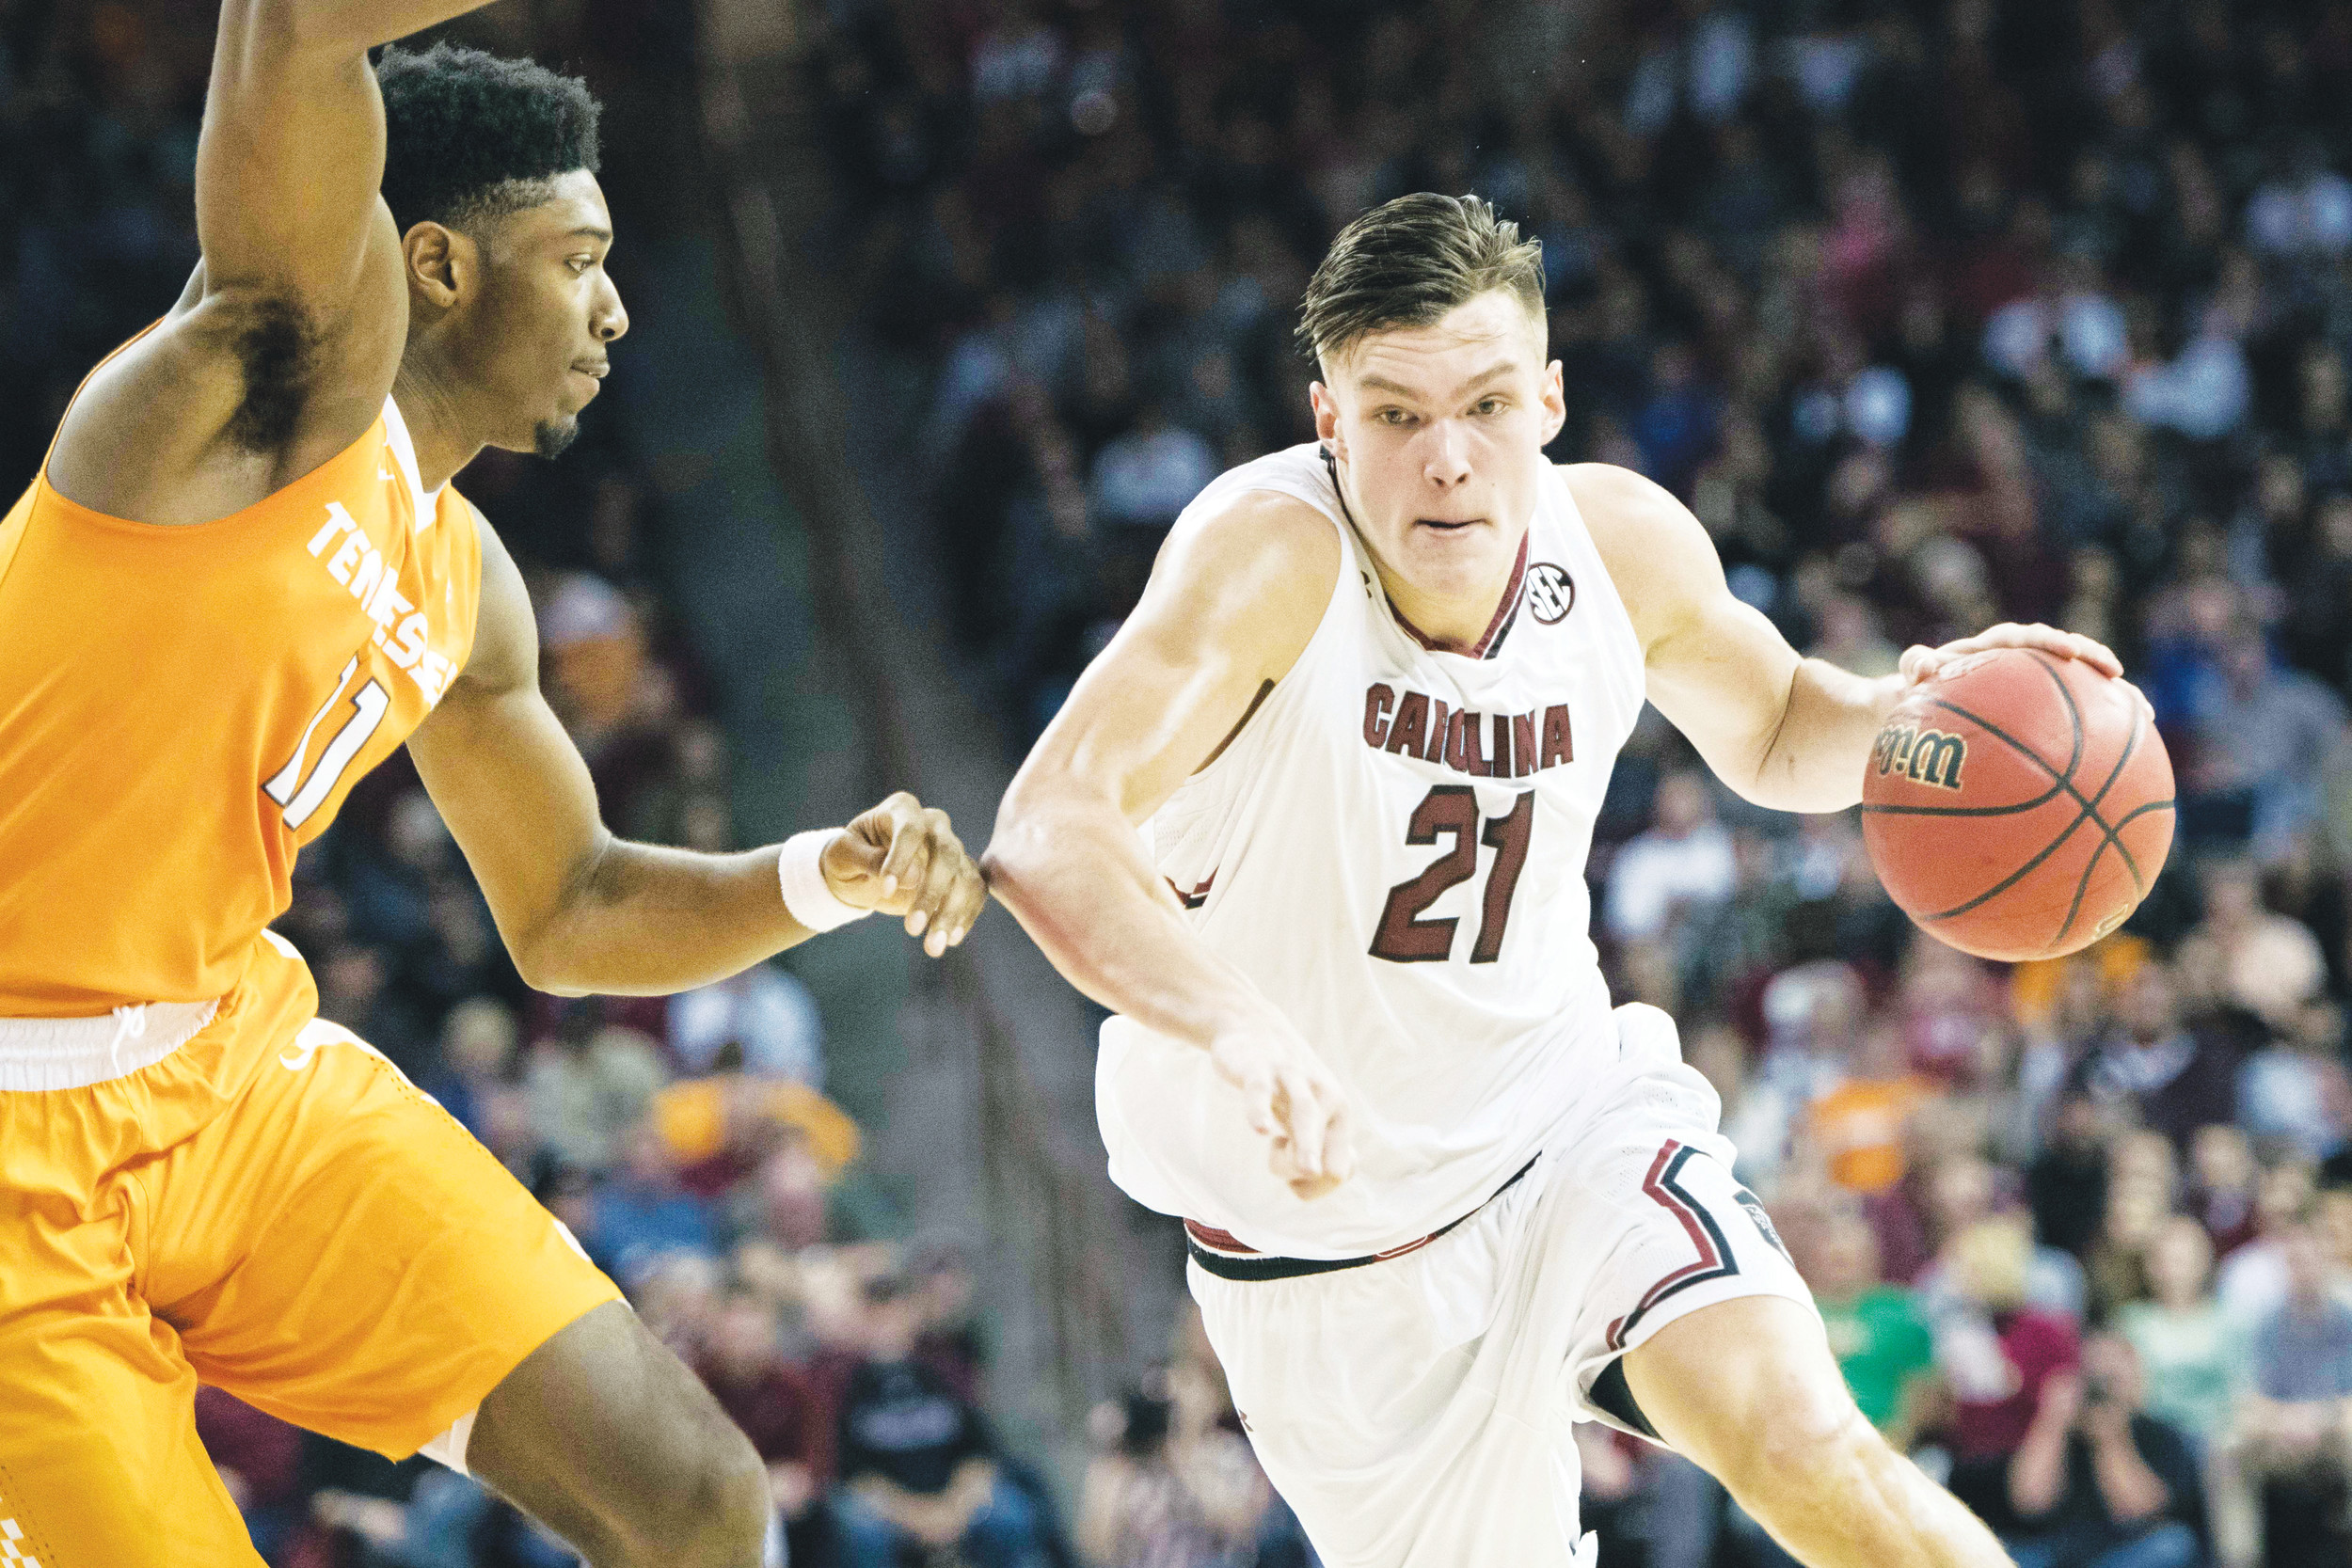 South Carolina forward Maik Kotsar (21) drives to the hoop against Tennessee forward Kyle Alexander (11) during the first half of the Volunteers' 70-63  victory over the Gamecocks on Saturday in Columbia.